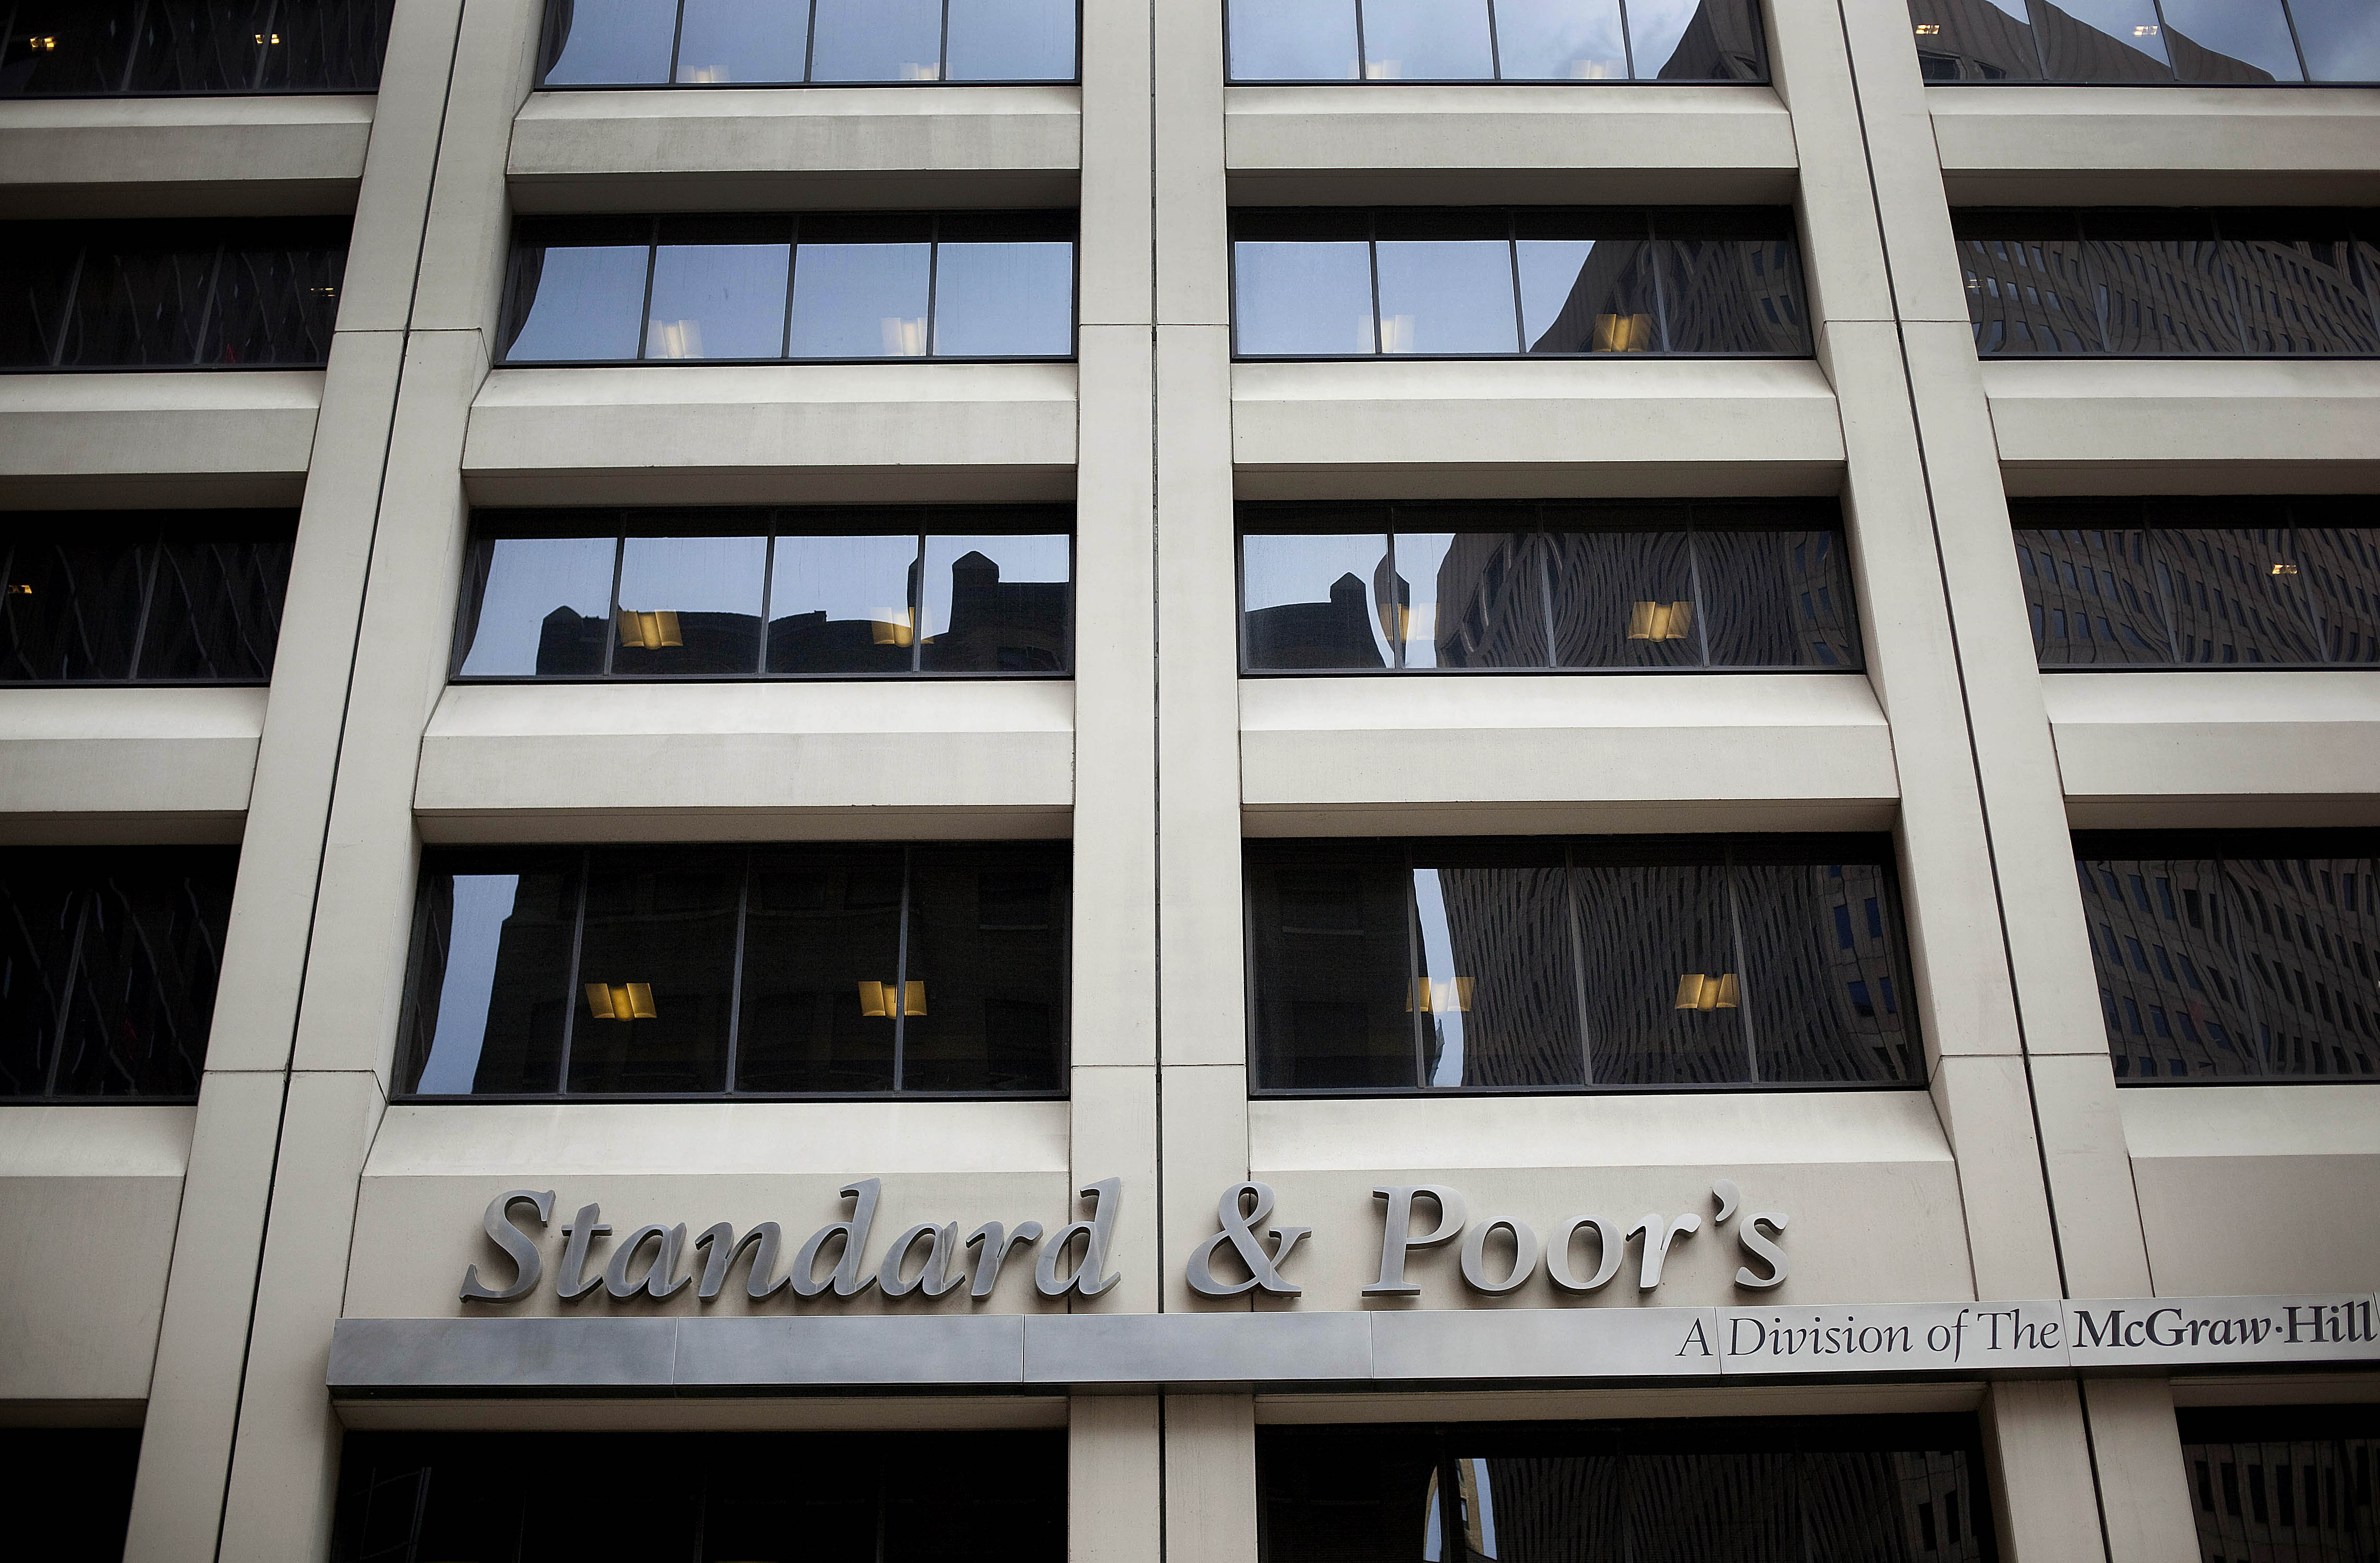 General Views Of Standard & Poor's Financial Ratings Agency